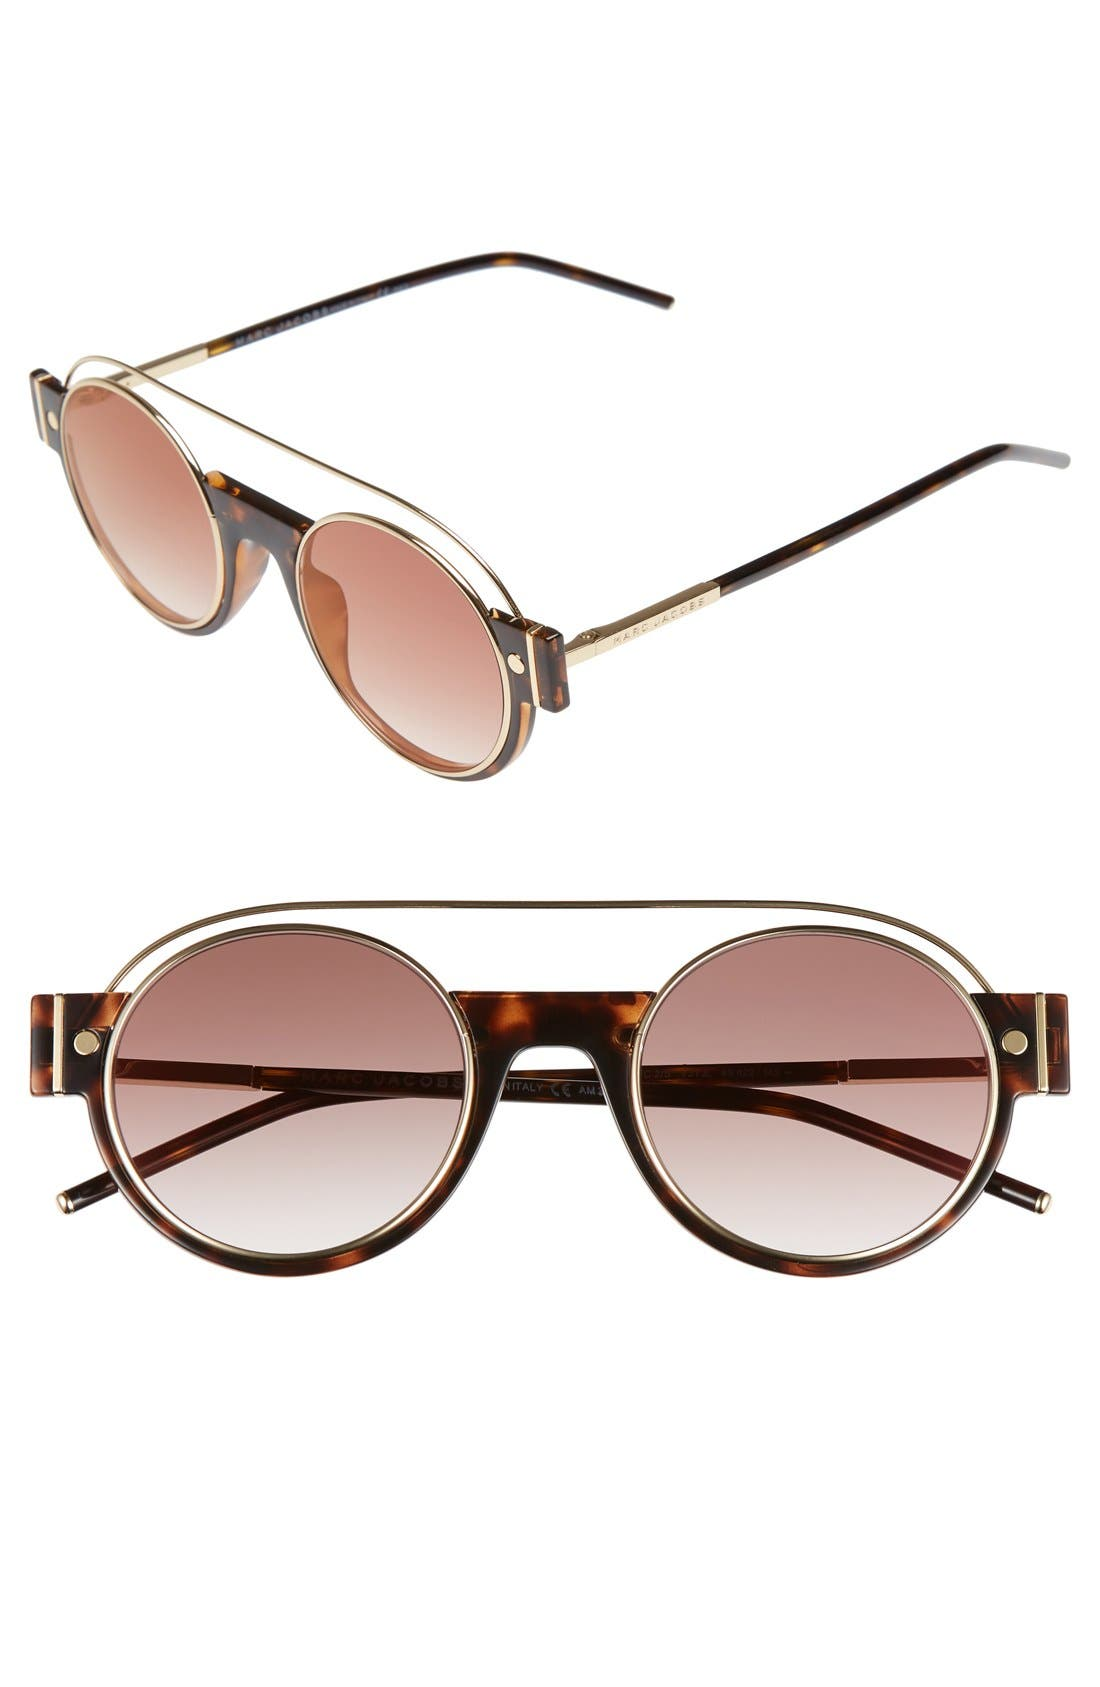 Alternate Image 1 Selected - MARC JACOBS 49mm Round Sunglasses